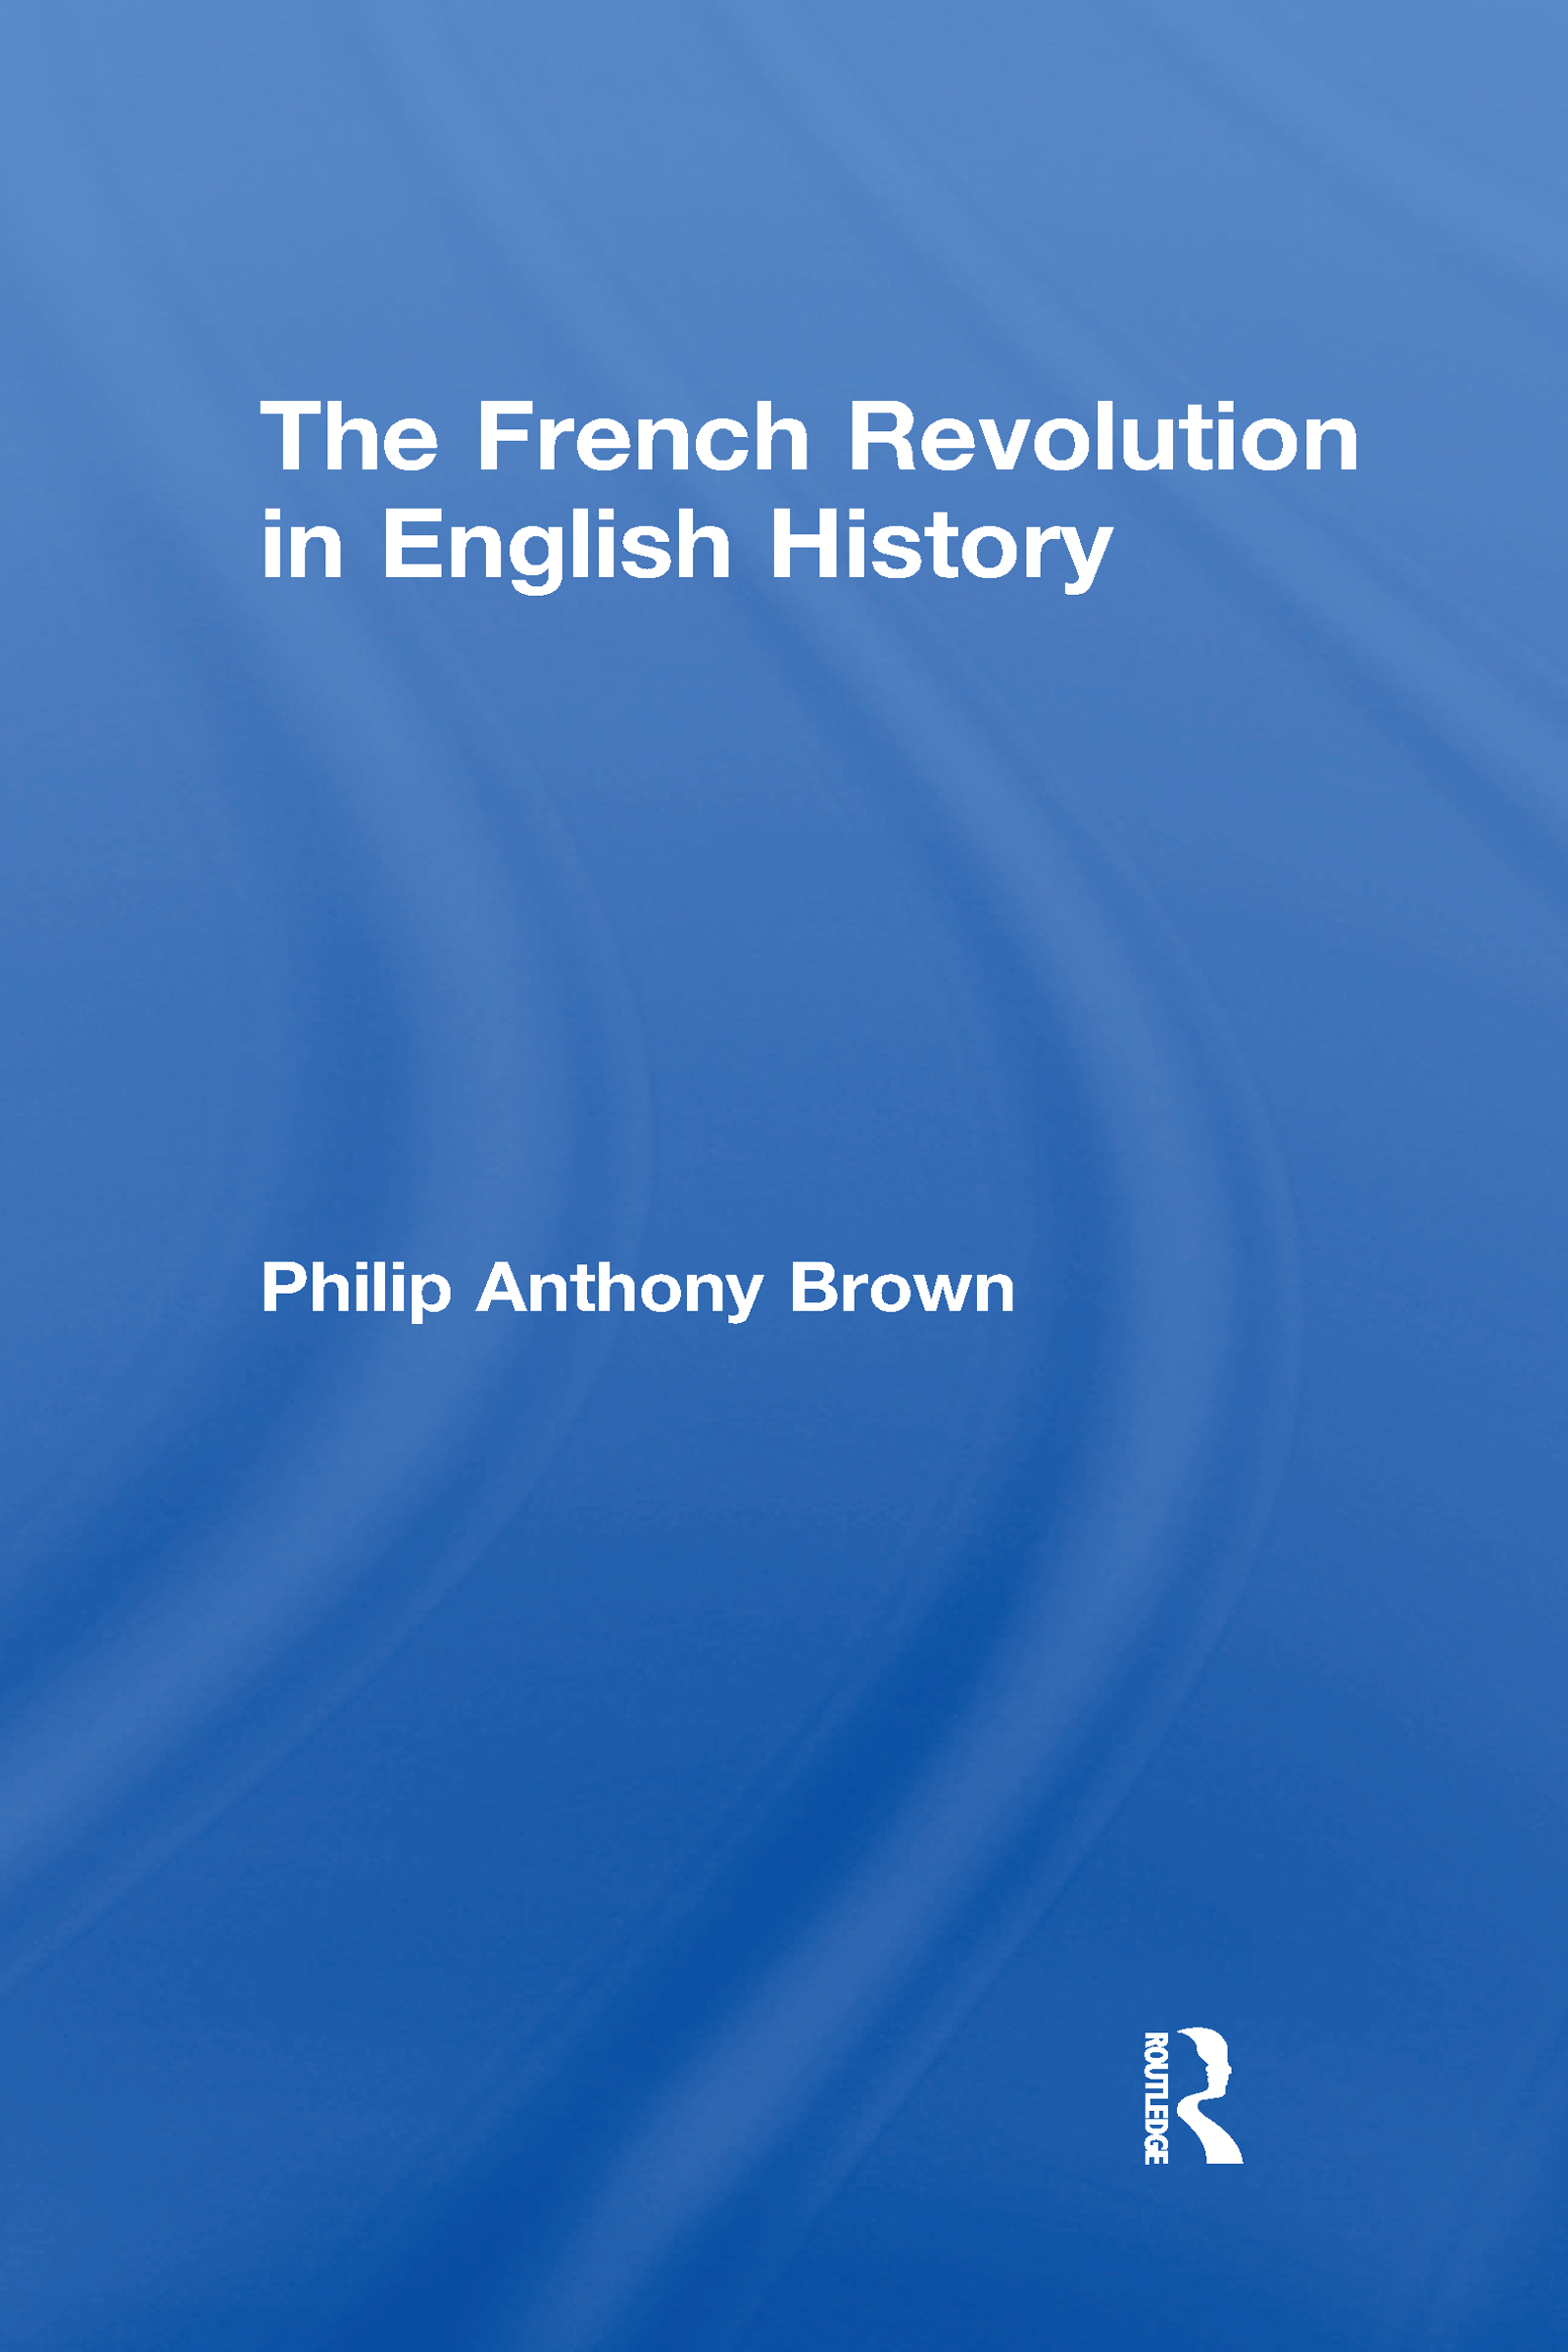 The French Revolution in English History